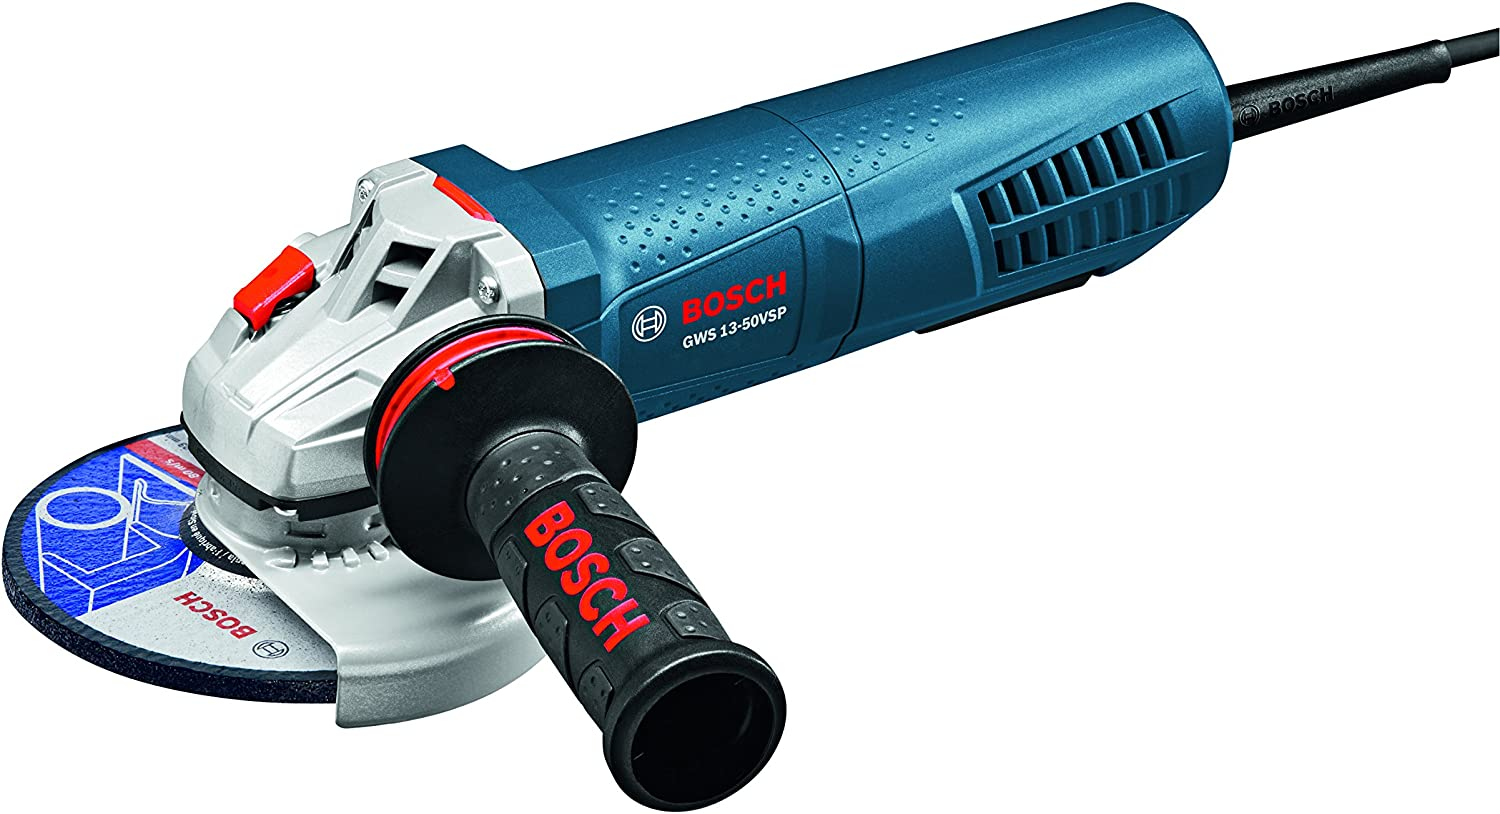 Bosch GWS13-50VSP High-Performance Angle Grinder Variable Speed with Paddle Switch 5 5